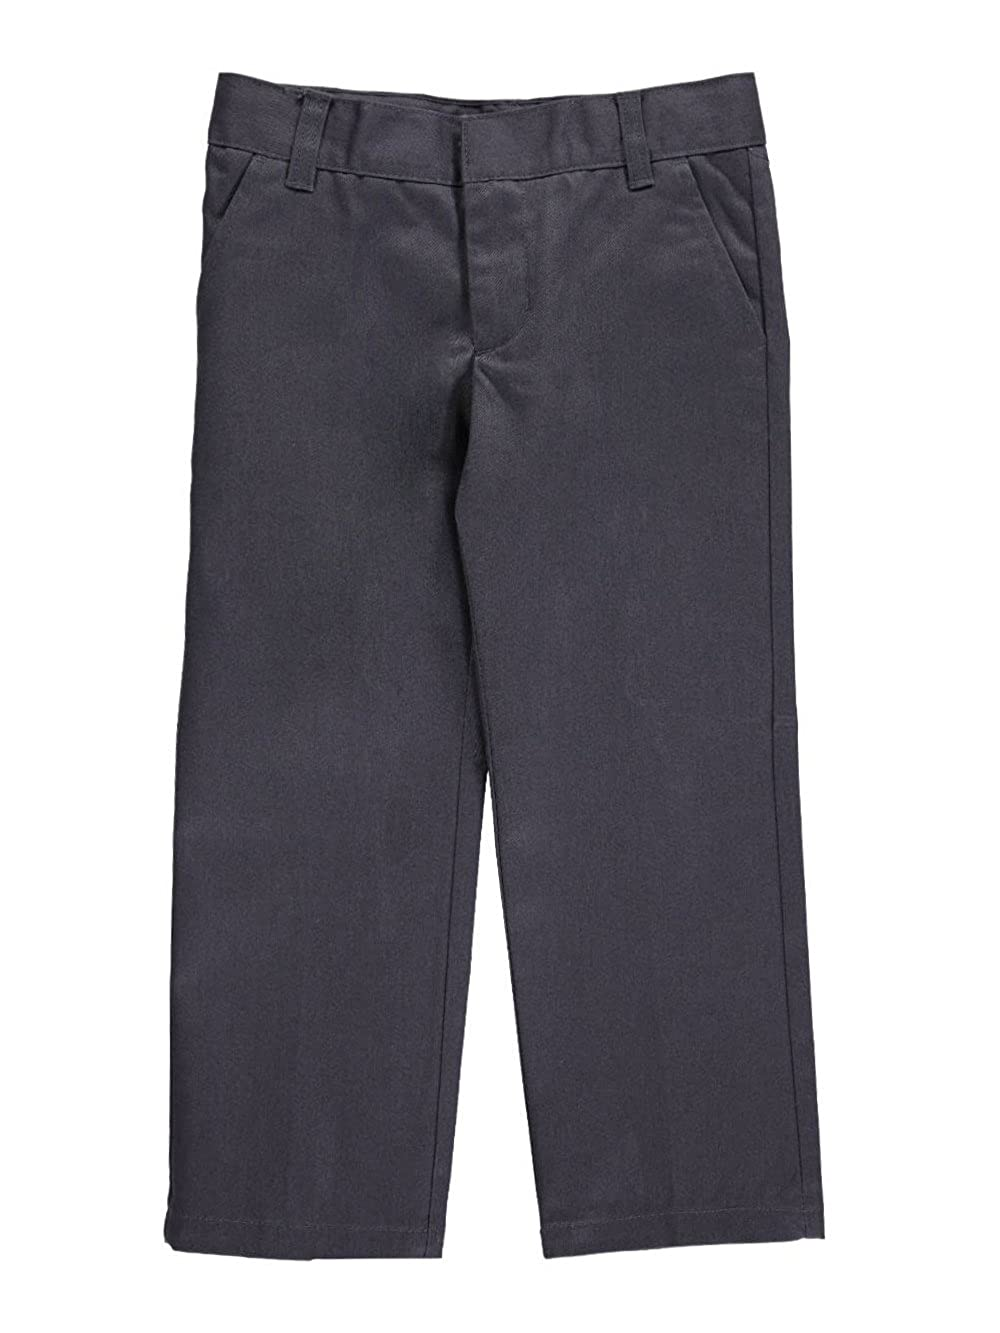 French Toast Boys' Wrinkle No More Relaxed Fit Pants